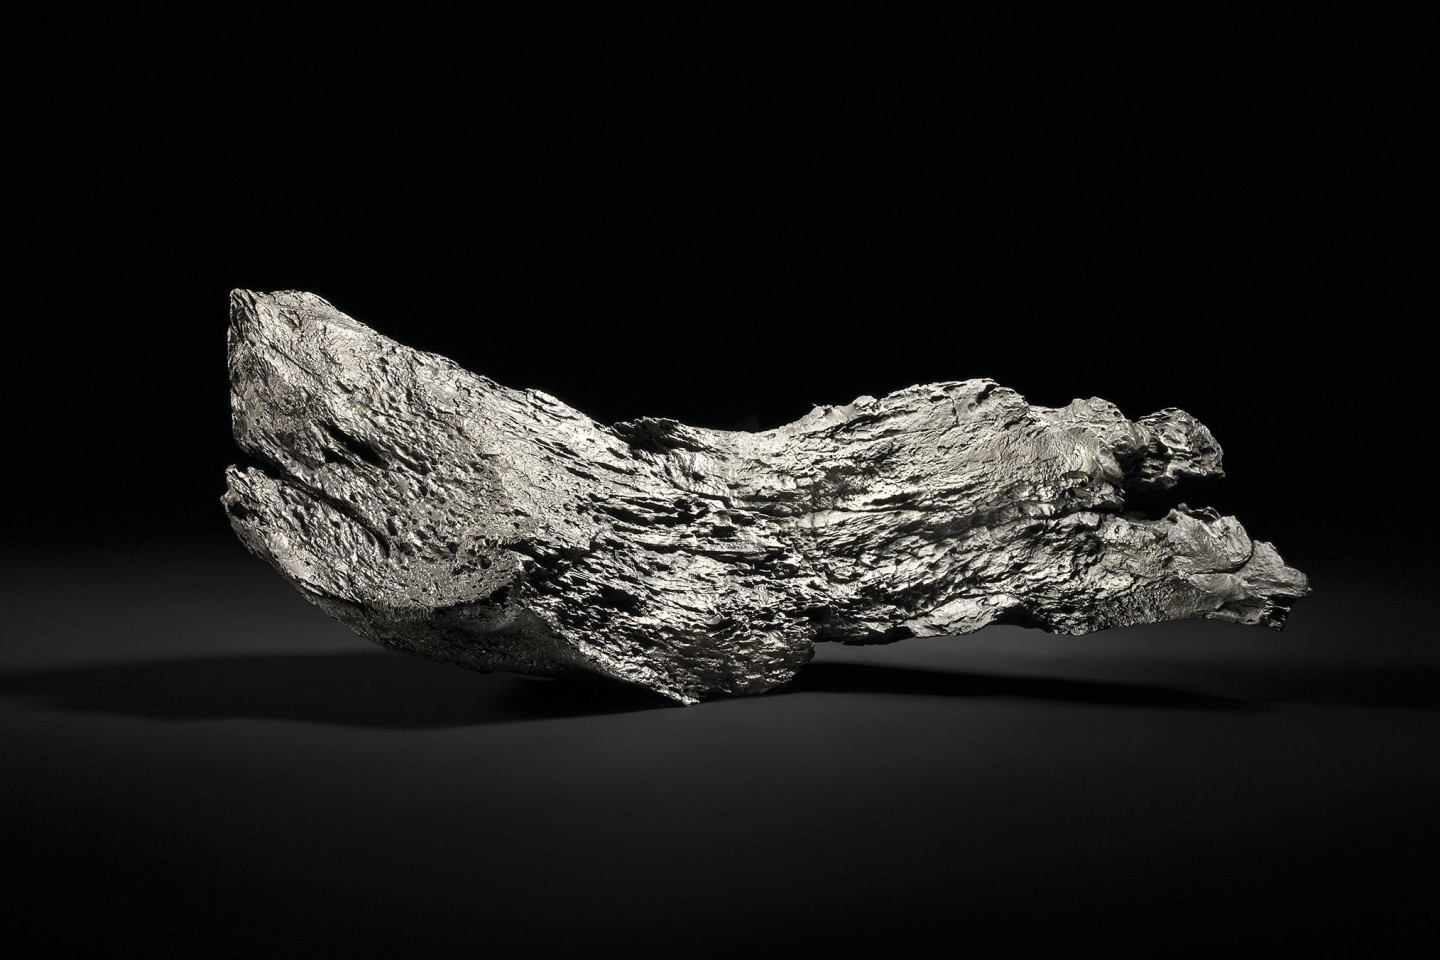 This 19.7kg Dronino Meteorite comes from the Ryazan district of Russia, and displays the wavy, textured, surface that is unique to Dronino meteorites, resulting from the centuries-long interaction of this meteorite's unique chemical composition with that of the ground. Unmounted, the meteorite balances stably on a flat surface and measures 17 x 7 x 61⁄4 inches (43.5 x 18 x 16 cm)